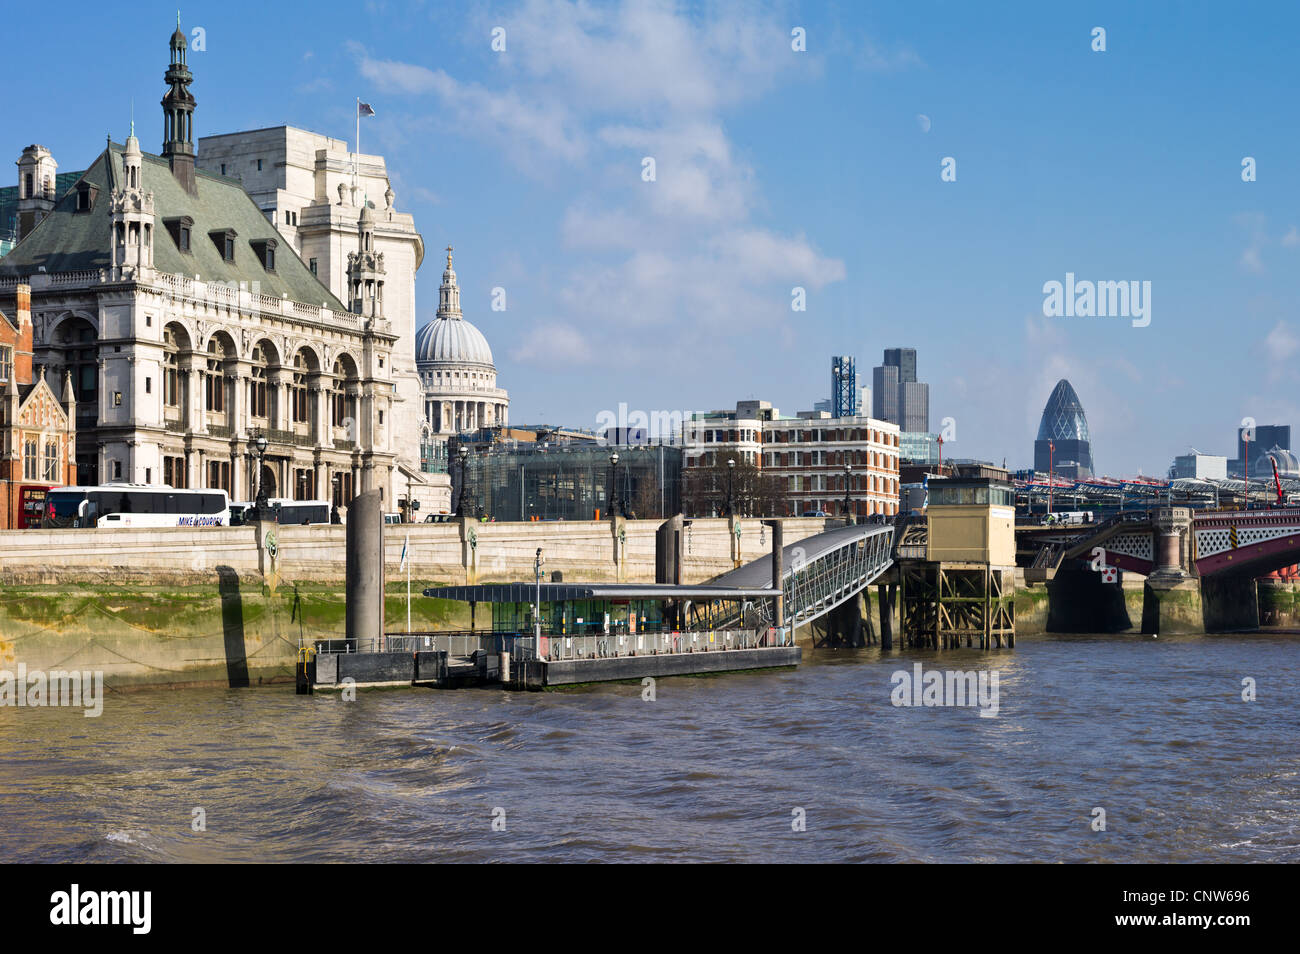 Europe England London seen from the Thames river, the Blackfriars area - Stock Image